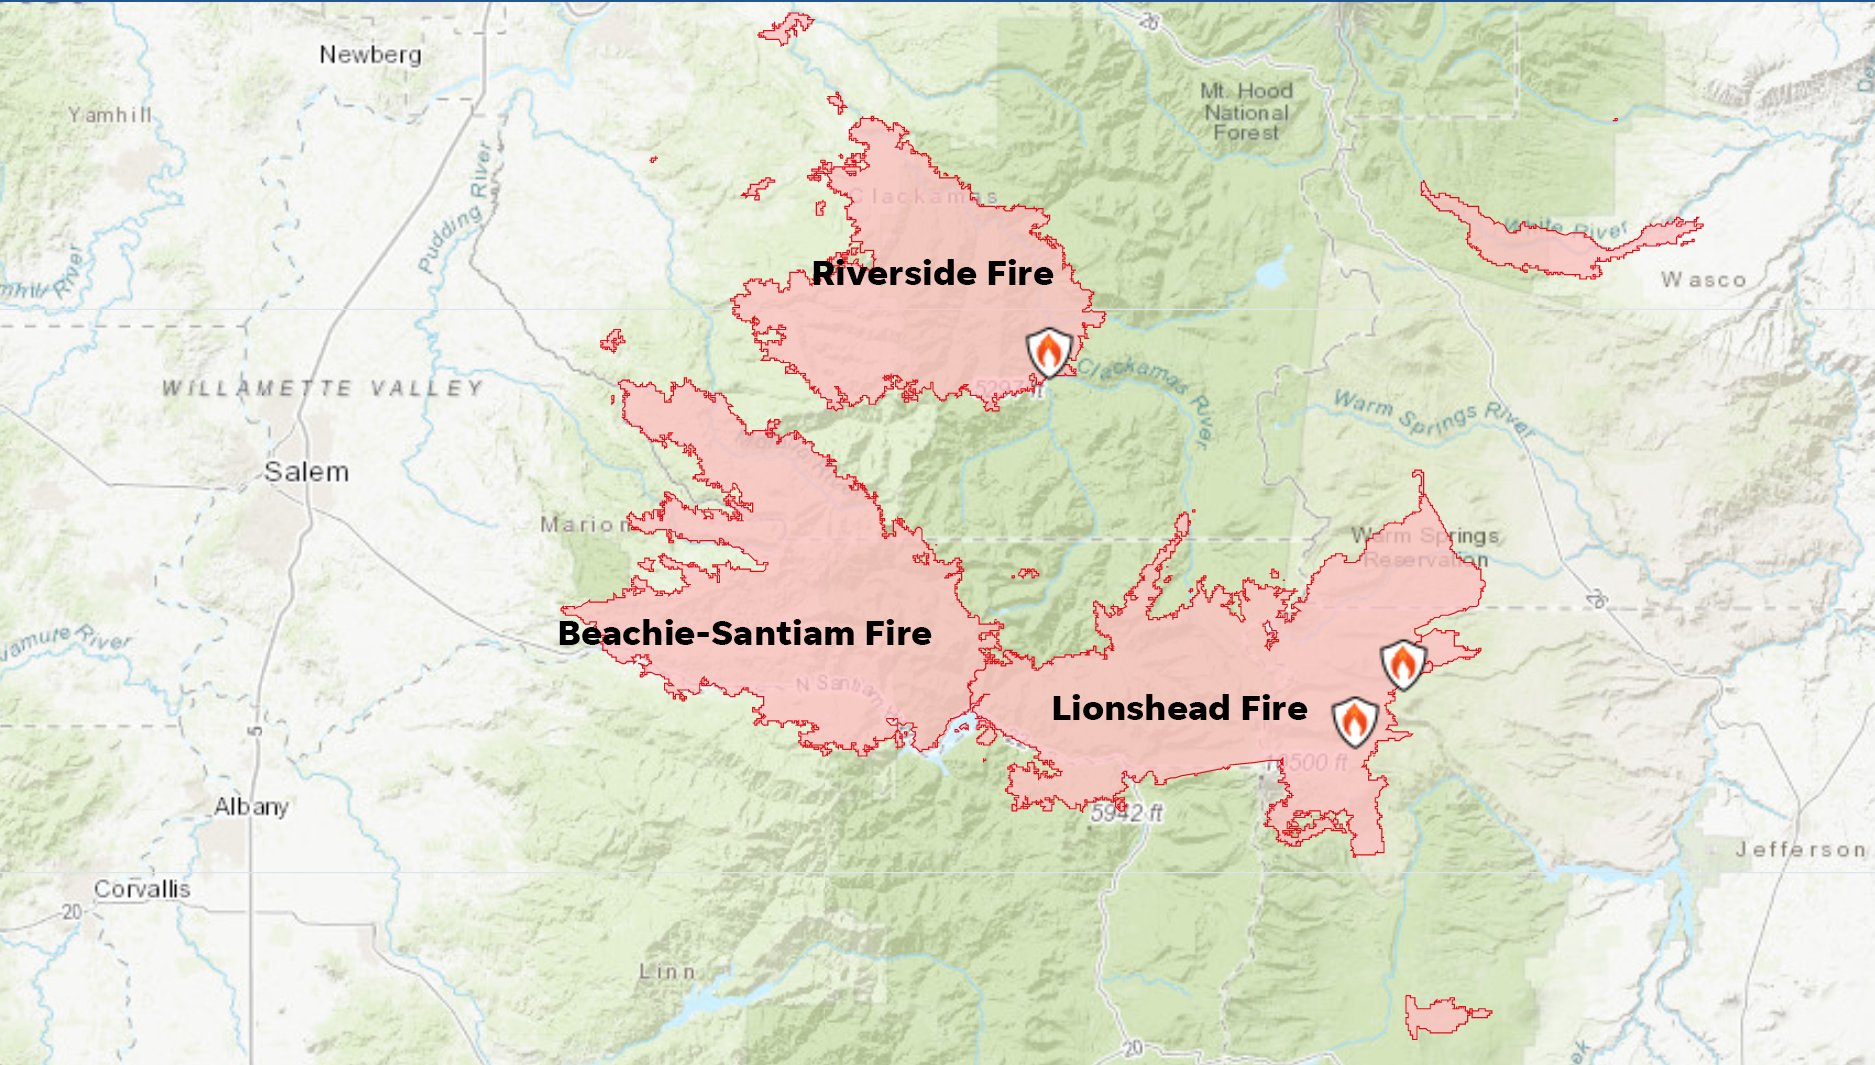 This map shows the main wildfire events near the Santiam Canyon during the Labor Day fires. The Beachie-Santiam fire refers to two fires that merged: the Beachie Creek Fire, which burned out of the Opal Creek Wilderness, and the Santiam Fire, which ignited on downed power lines in the Santiam Canyon.